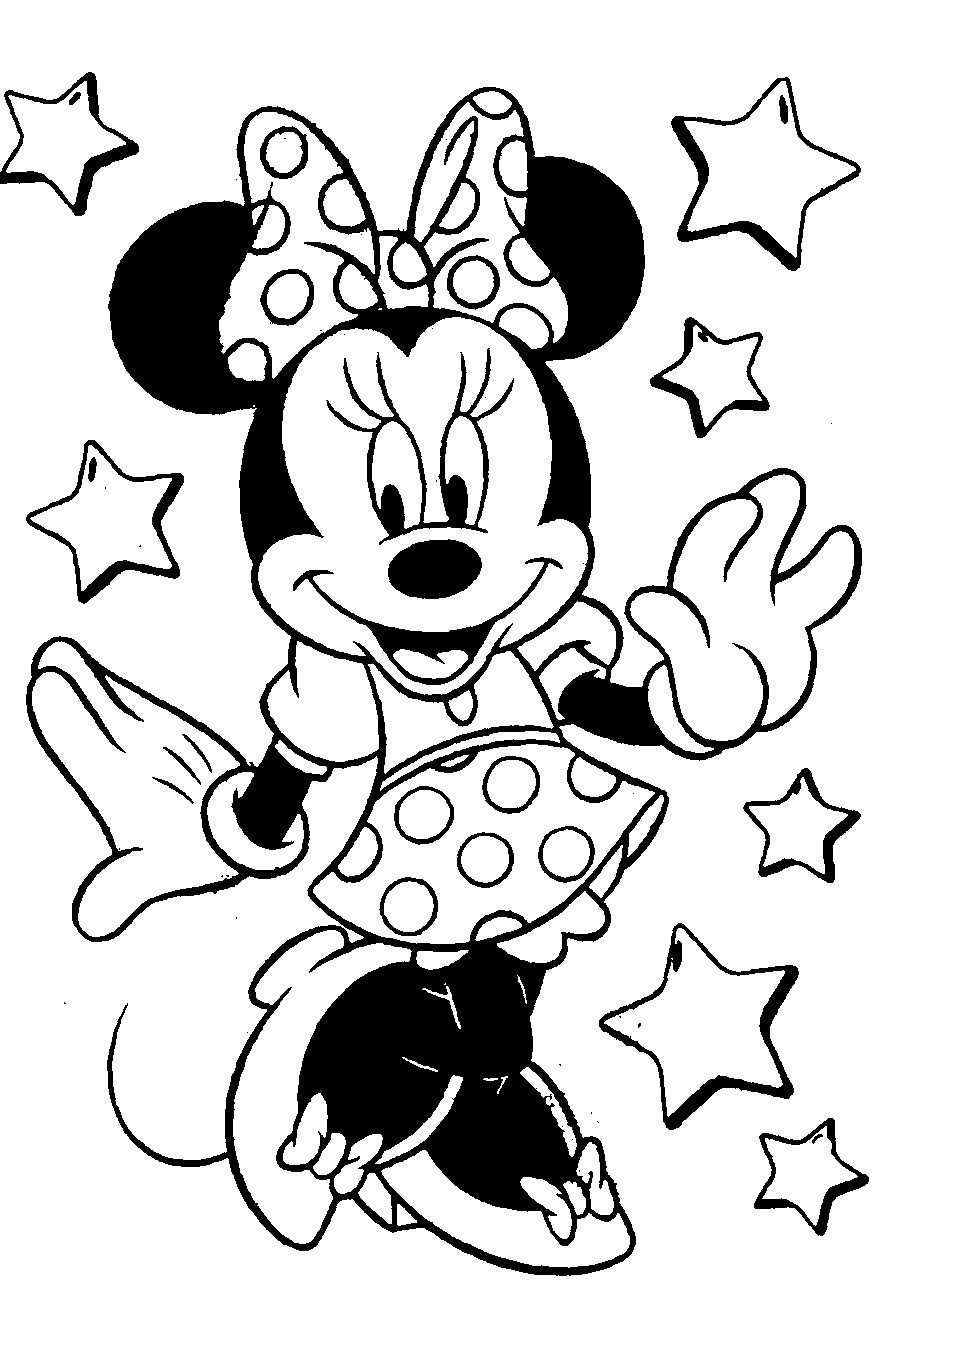 Minnie Mouse Coloring Pages Minnie Mouse Coloring Pages For Kids Printable Thanhhoacar Entitlementtrap Com Mickey Mouse Coloring Pages Free Disney Coloring Pages Minnie Mouse Coloring Pages